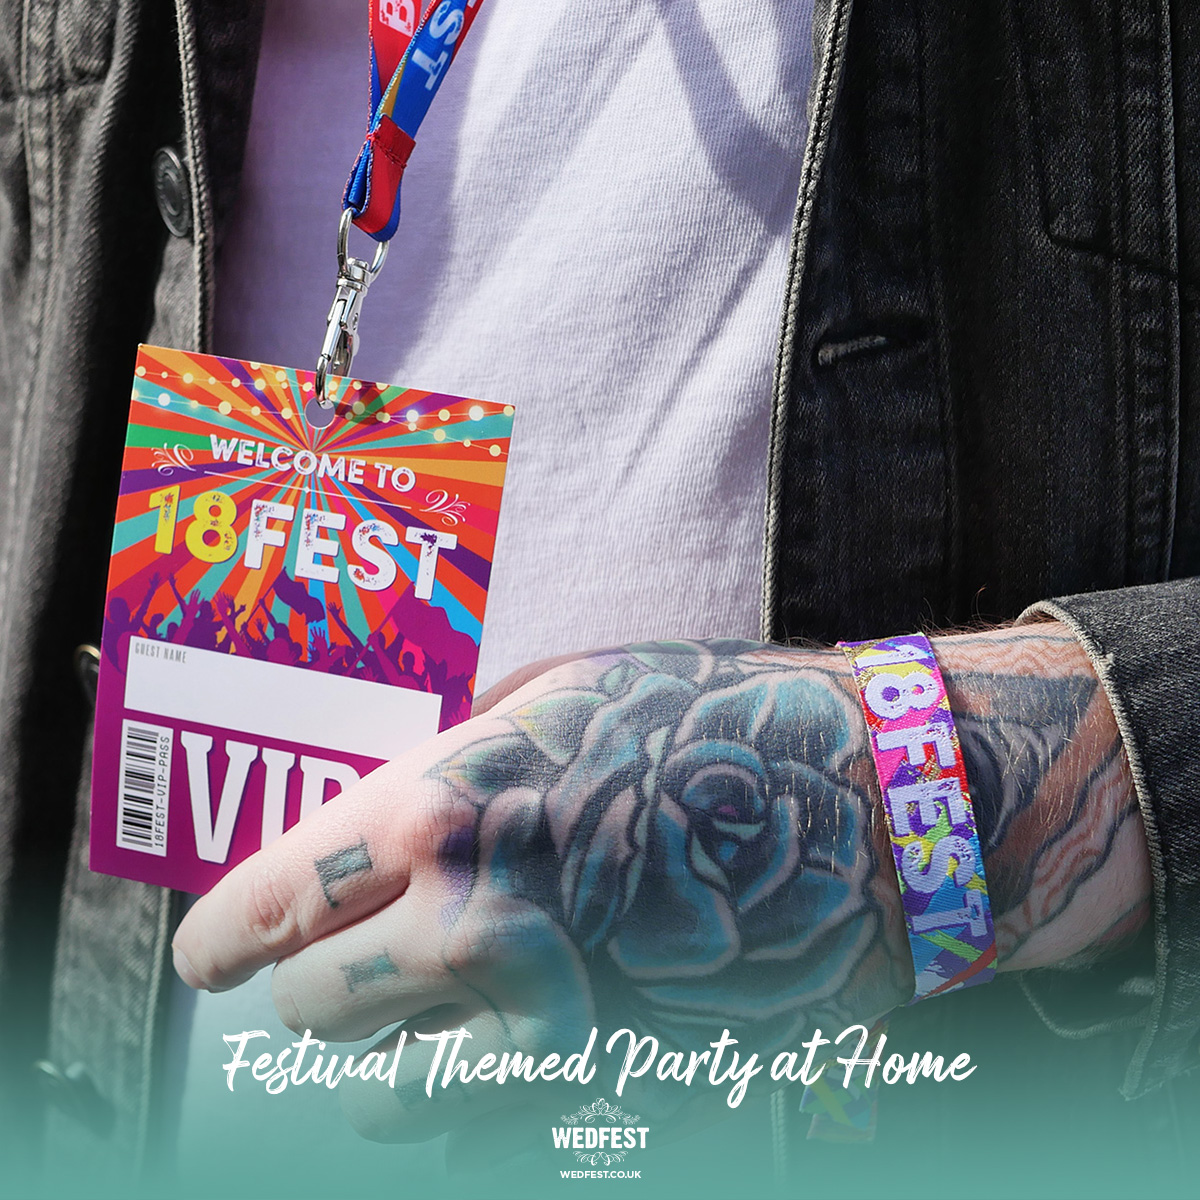 18FEST 18th birthday party festival at home wristbands lanyards party favours